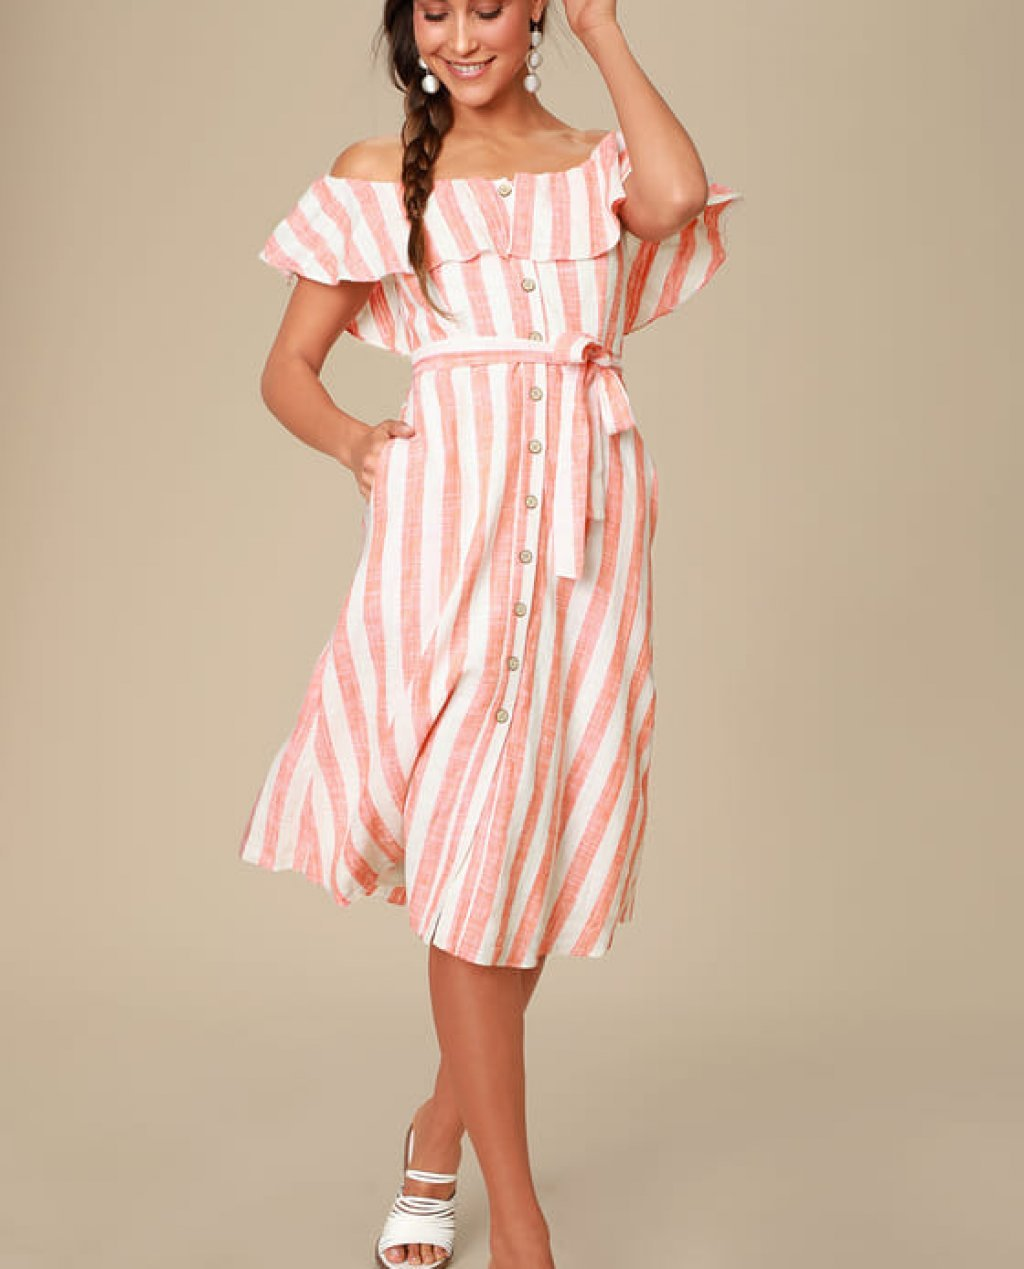 Sunny Days Orange Striped Off-the-Shoulder Midi Dress